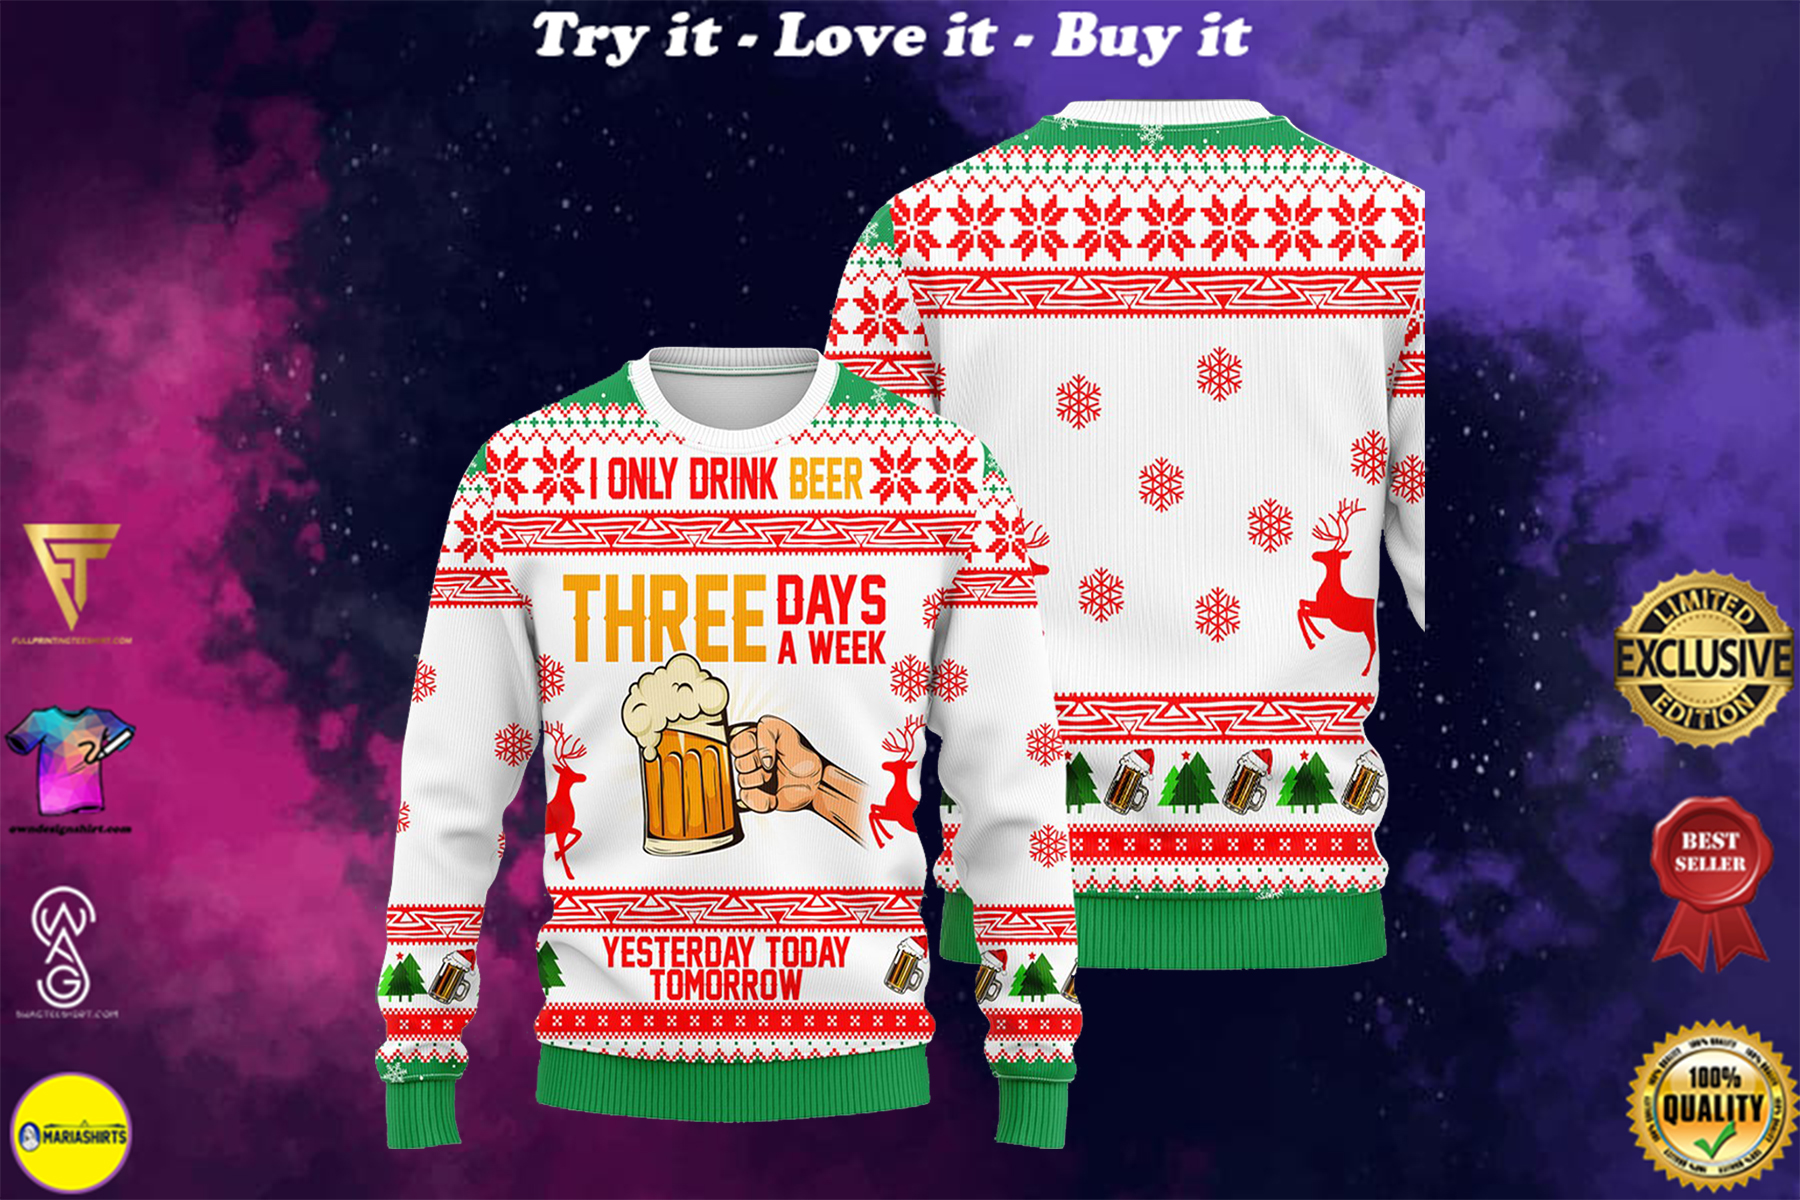 [special edition] i only drink beer three days a week all over printed ugly christmas sweater - maria